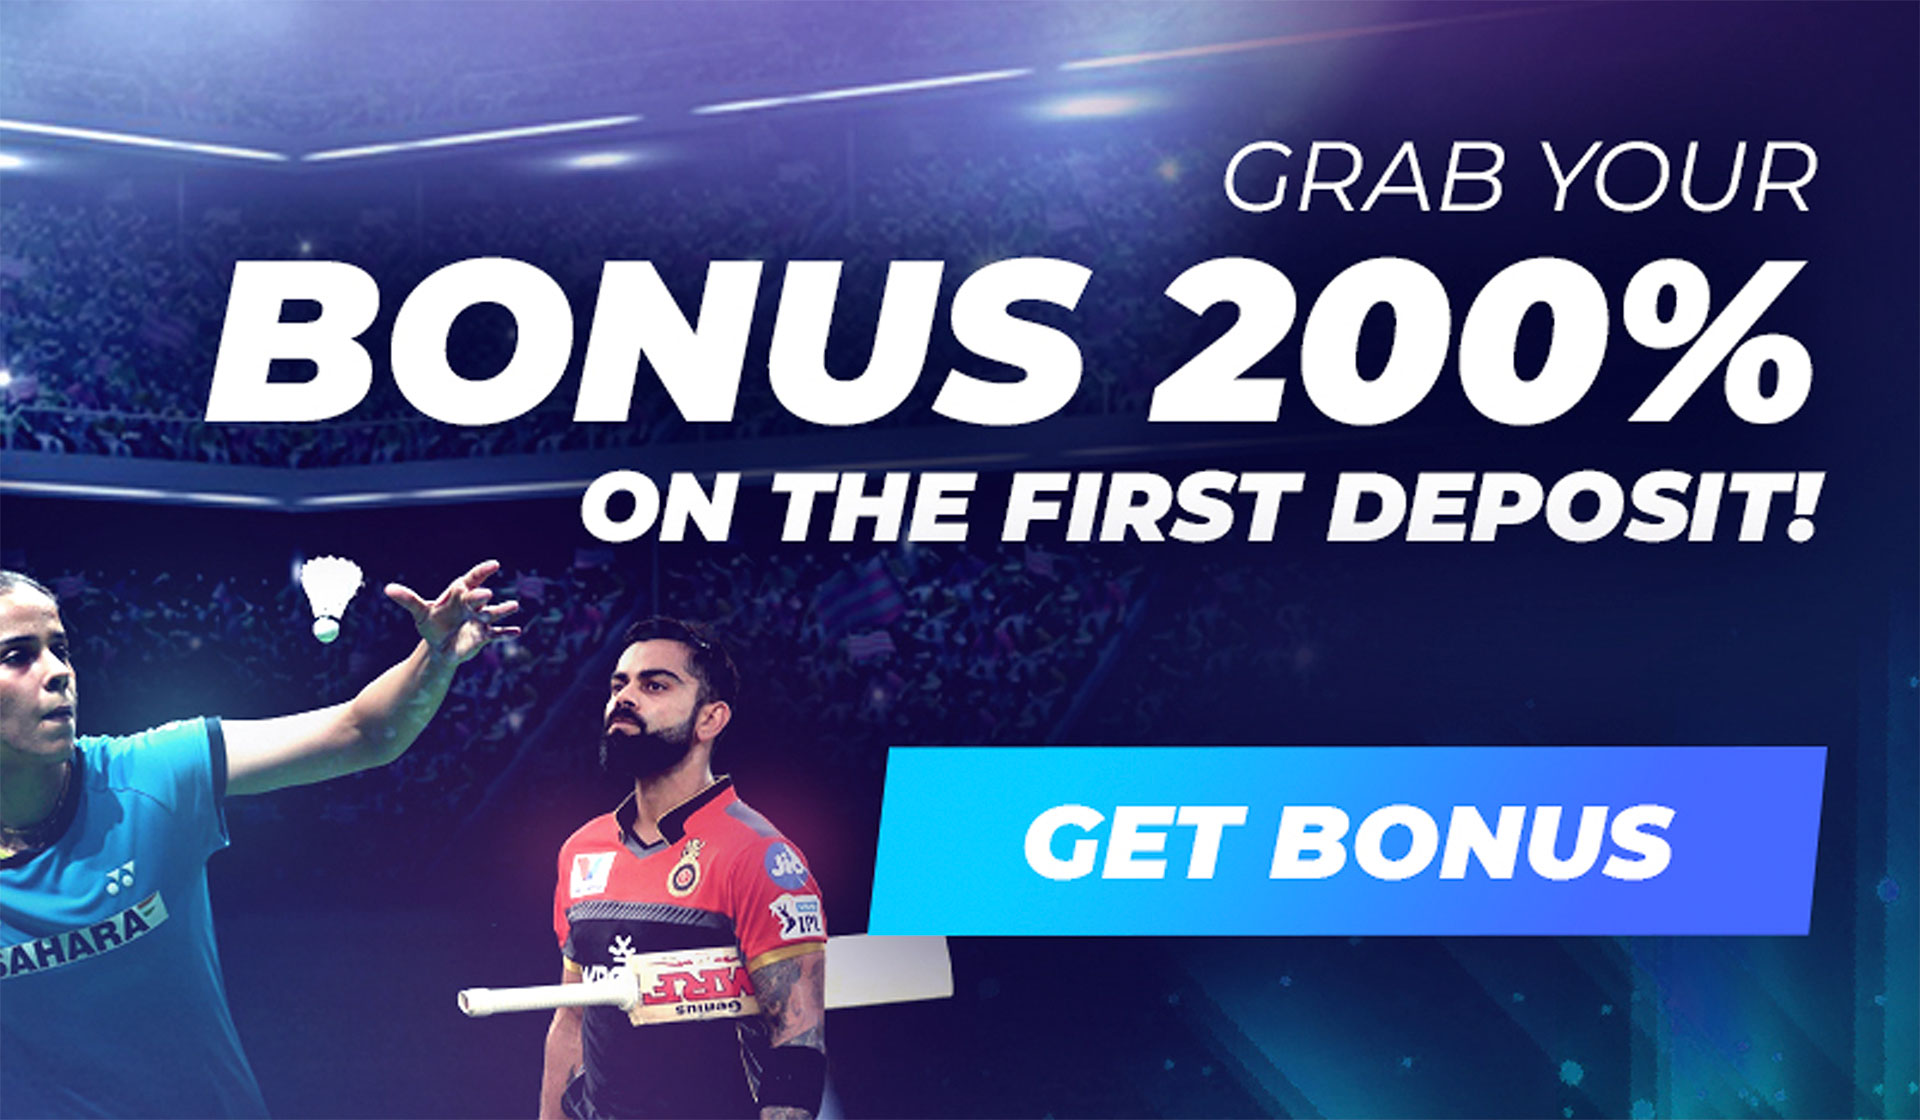 Get your welcome bonus and place even more profitable bets.